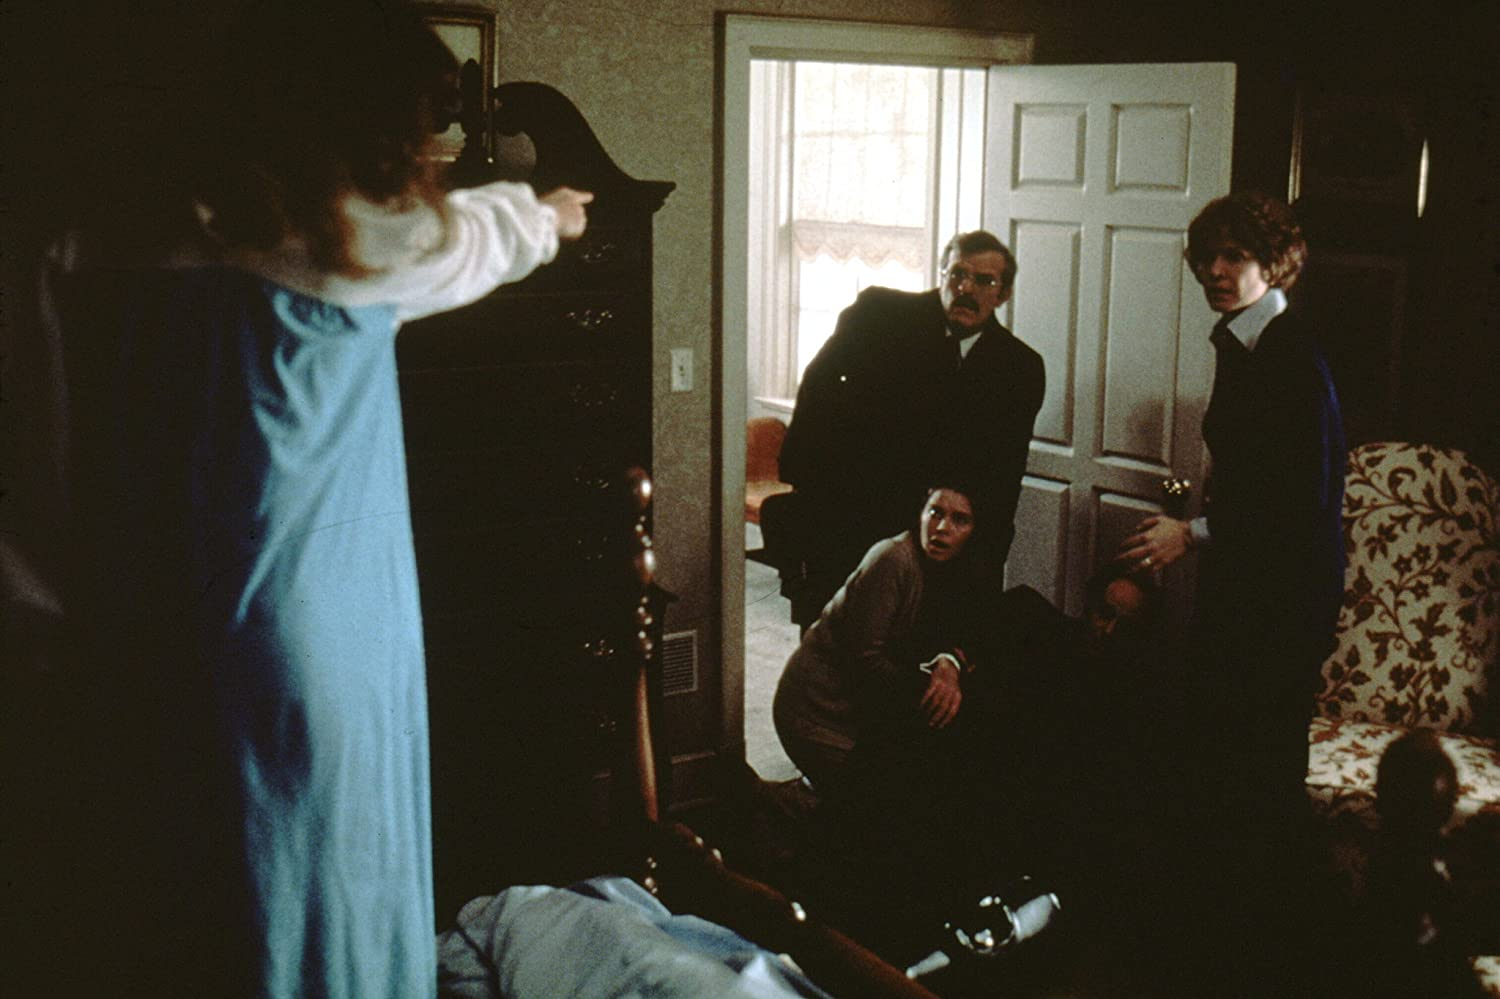 Linda Blair, Ellen Burstyn, Barton Heyman, Robert Symonds, and Kitty Winn in The Exorcist (1973)